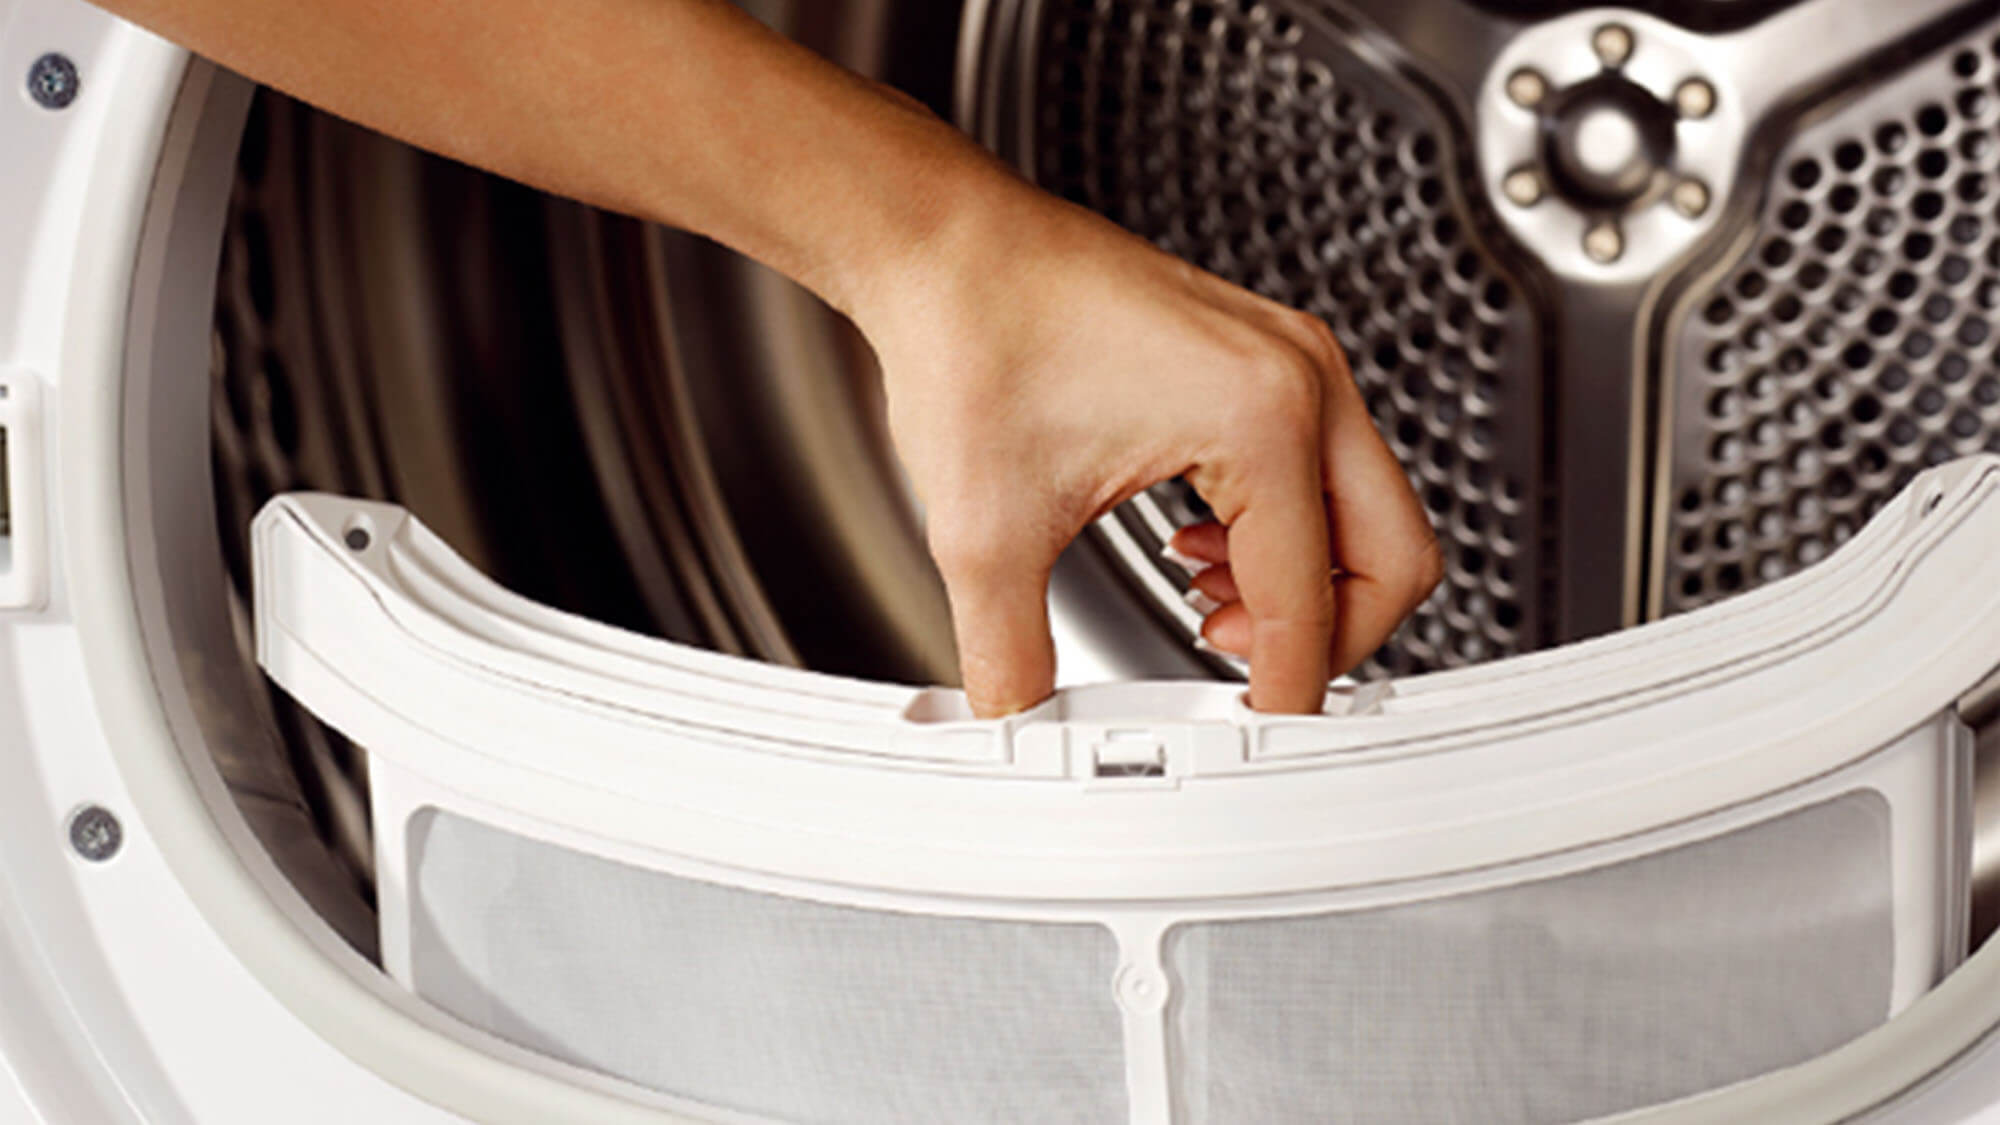 Having trouble using your tumble dryer?